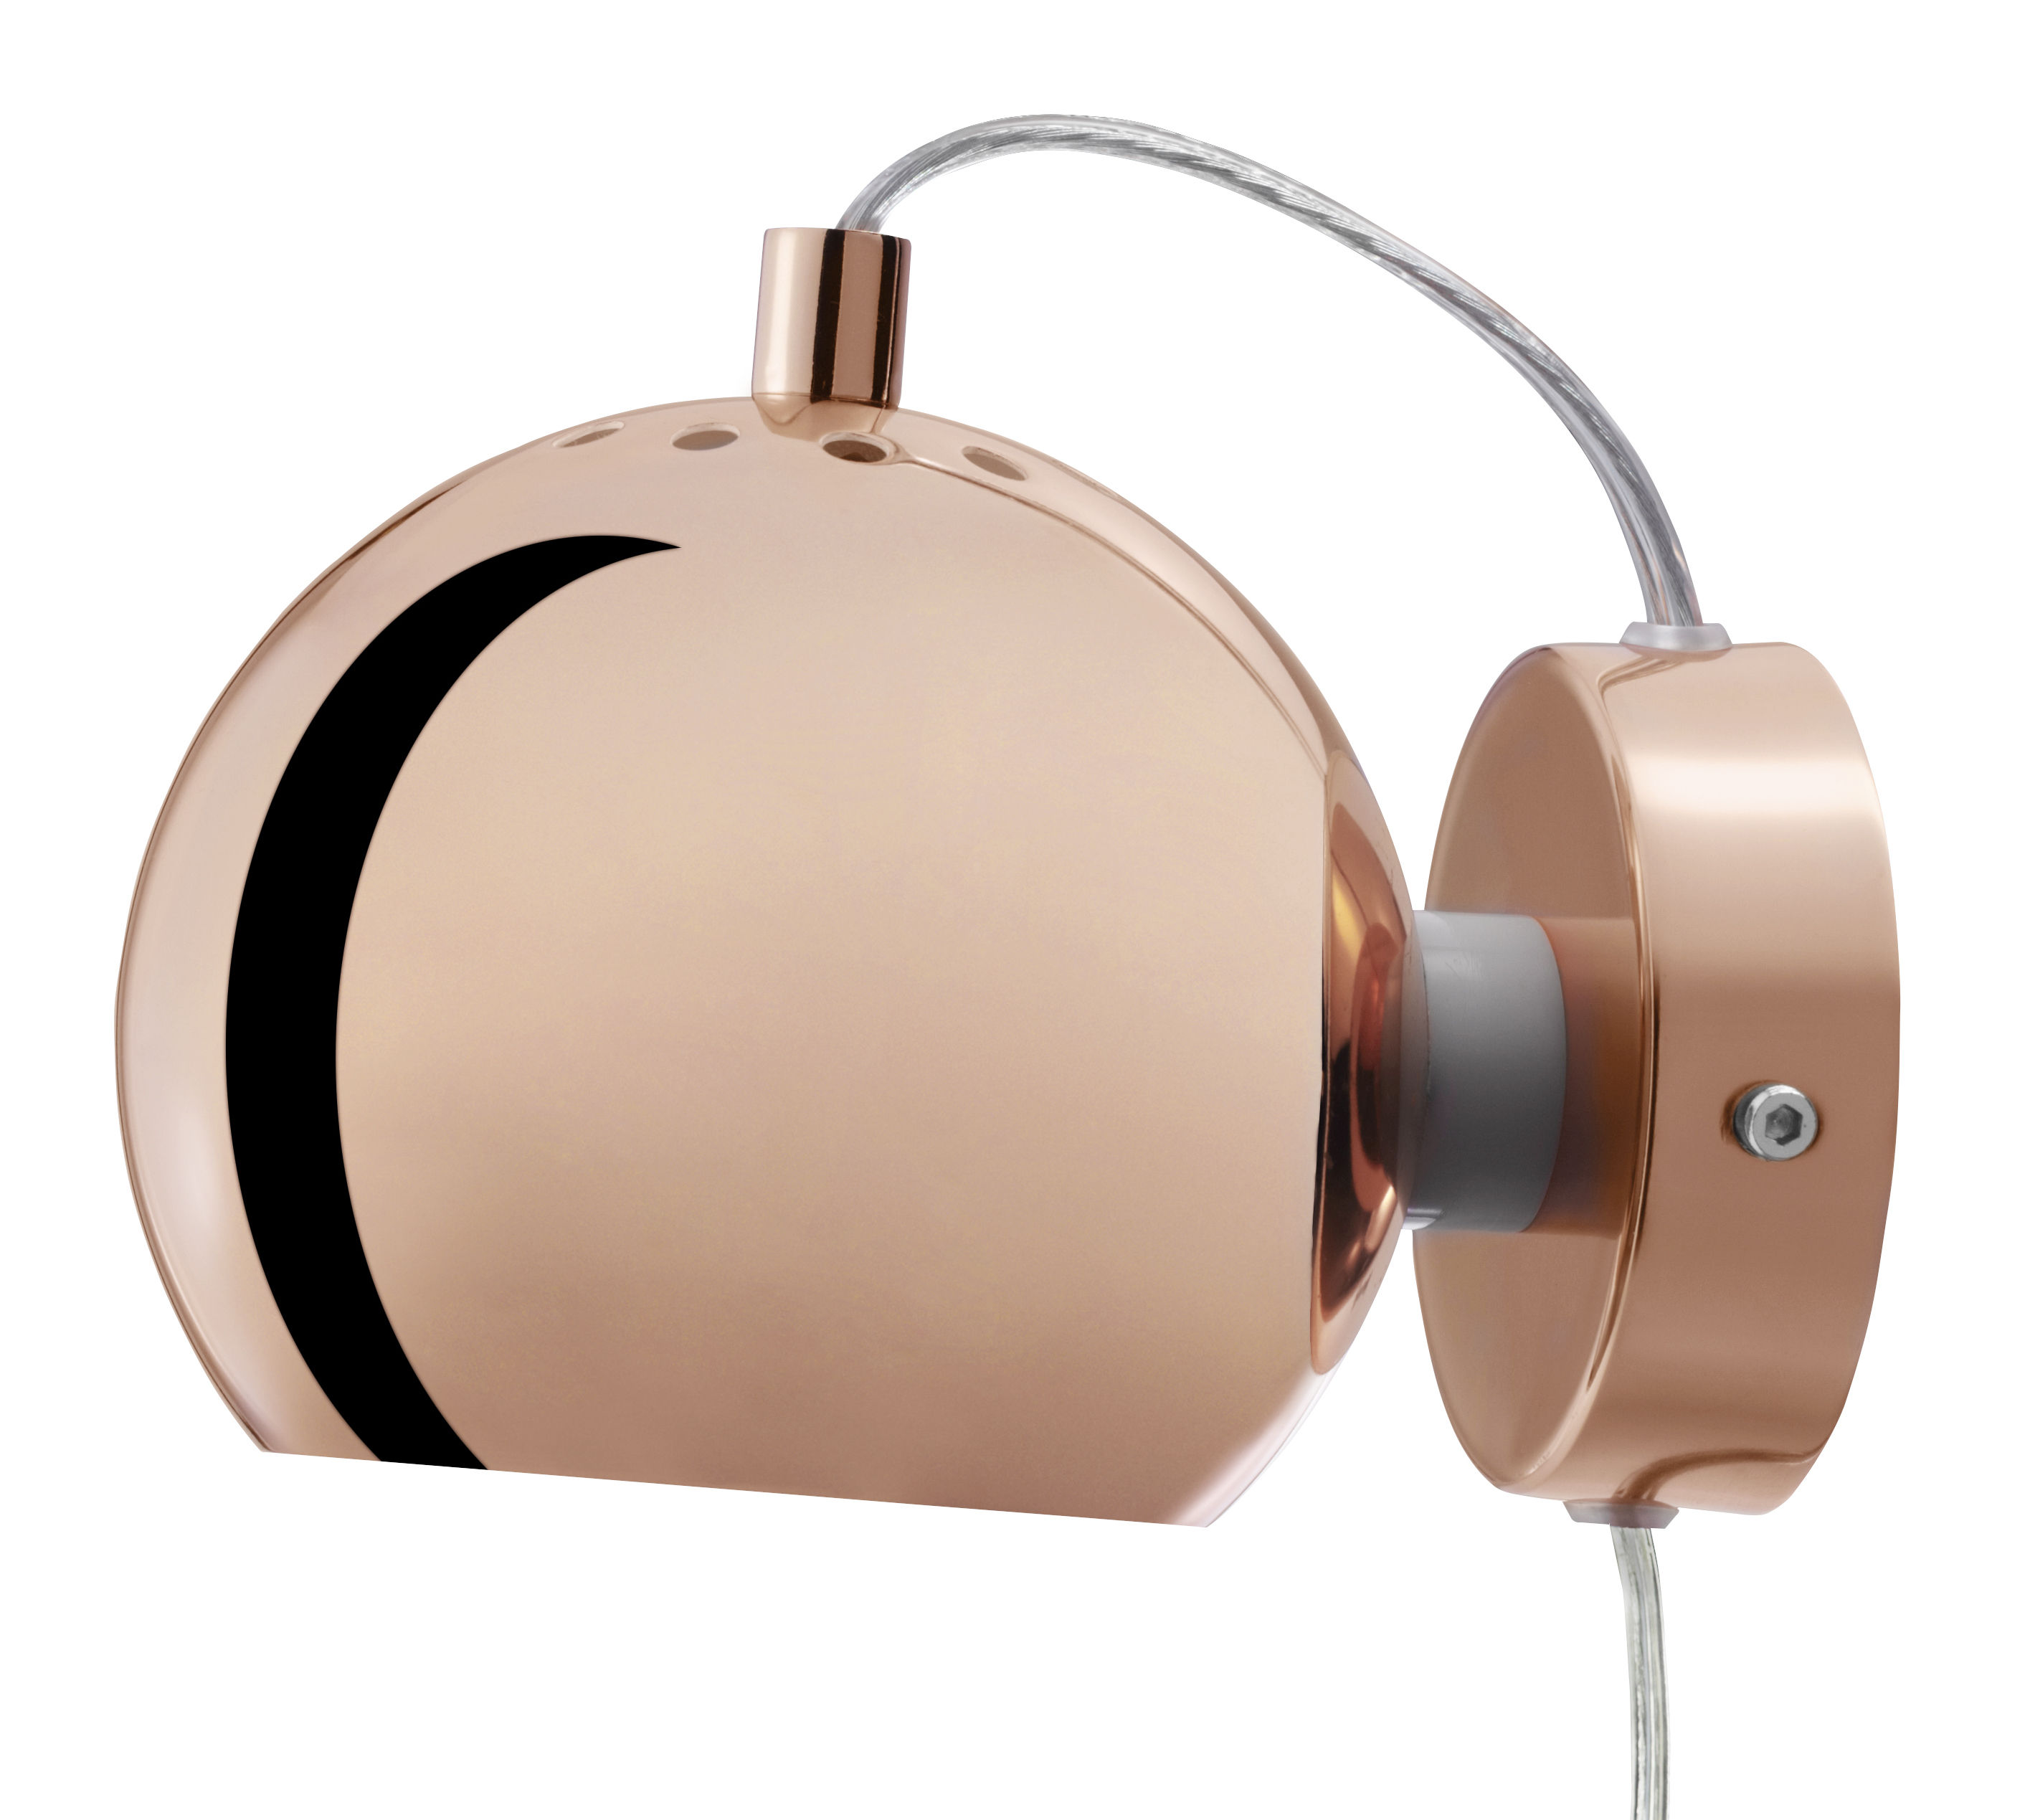 Lighting - Wall Lights - Ball Wall light with plug by Frandsen - Copper - Copper finish metal